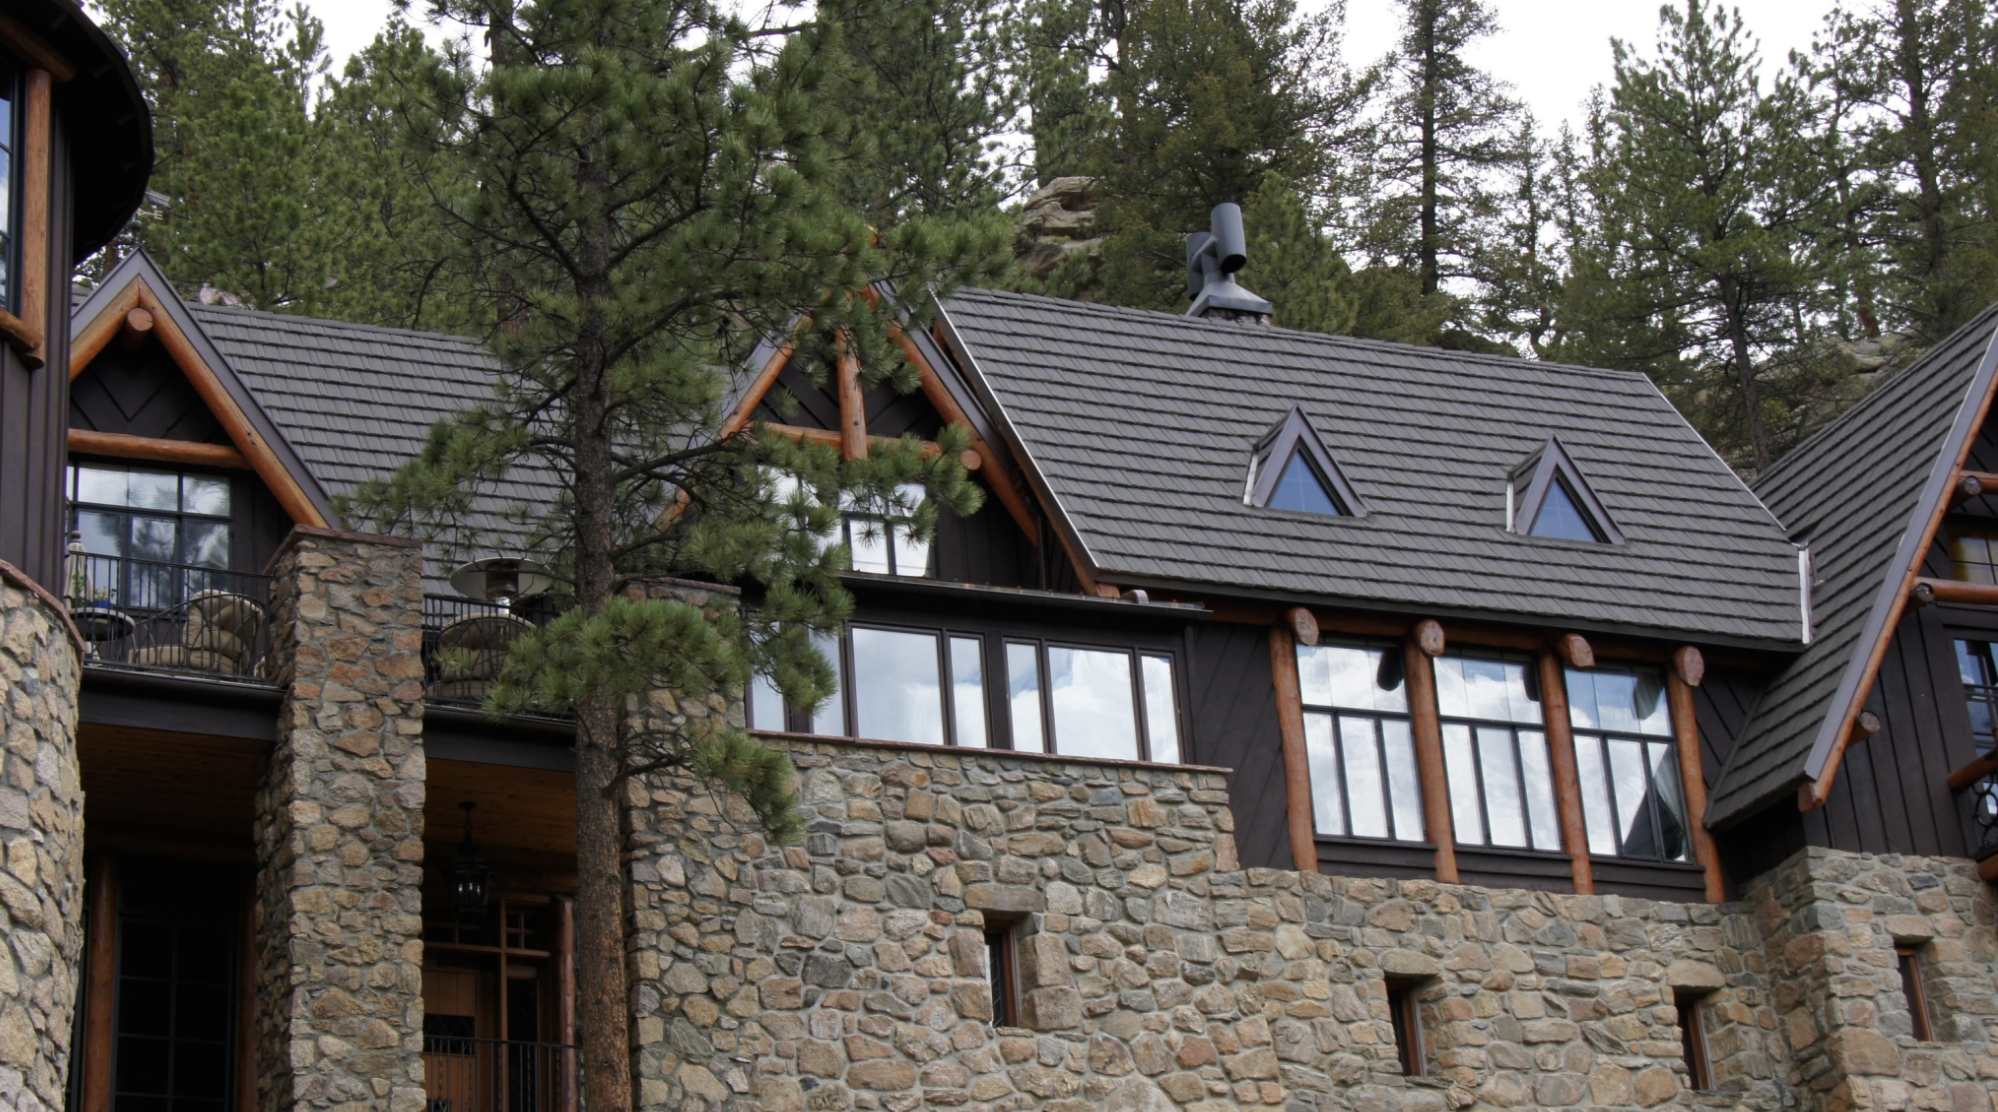 Denver-based Horn Brothers Roofing had installed a stone-coated steel roof on the owner's parents' house, and the company got the nod for this project as well.